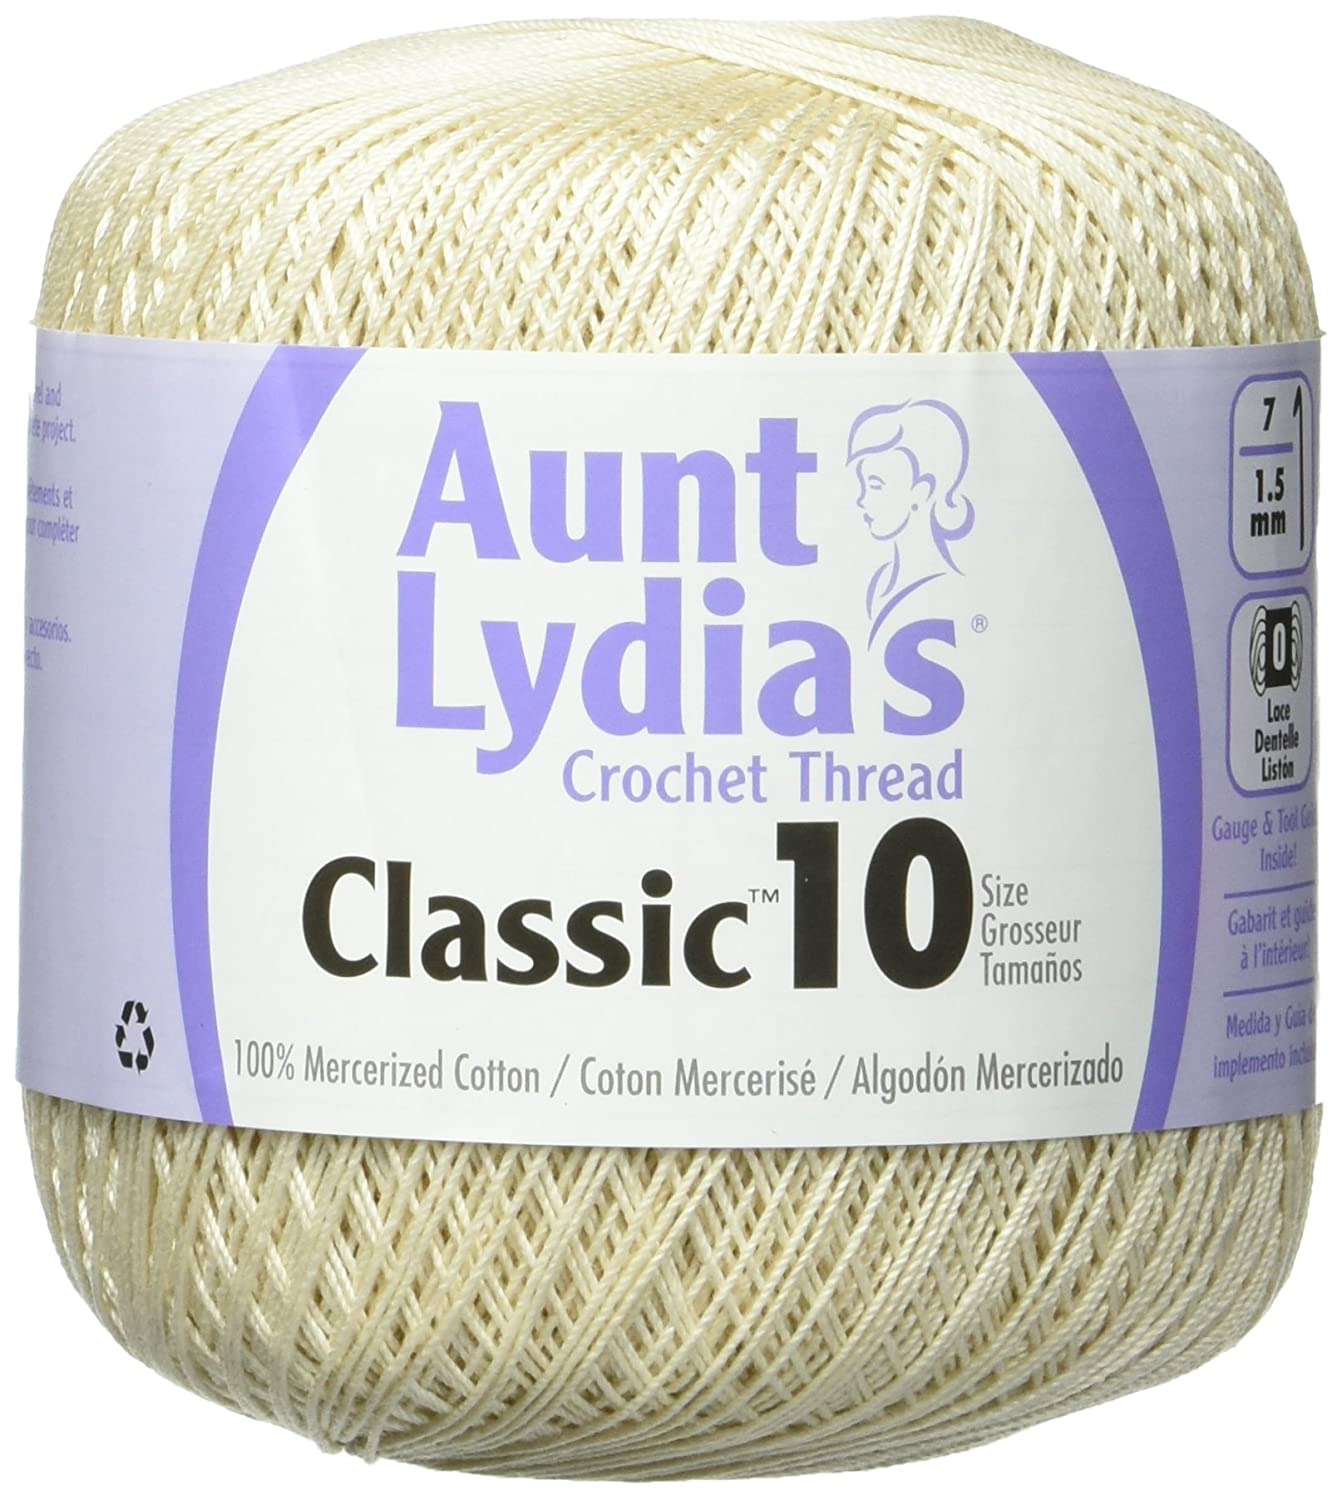 Amazon.com: Coats Crochet Classic Crochet Thread 10 Forest Green: Arts, Crafts & Sewing